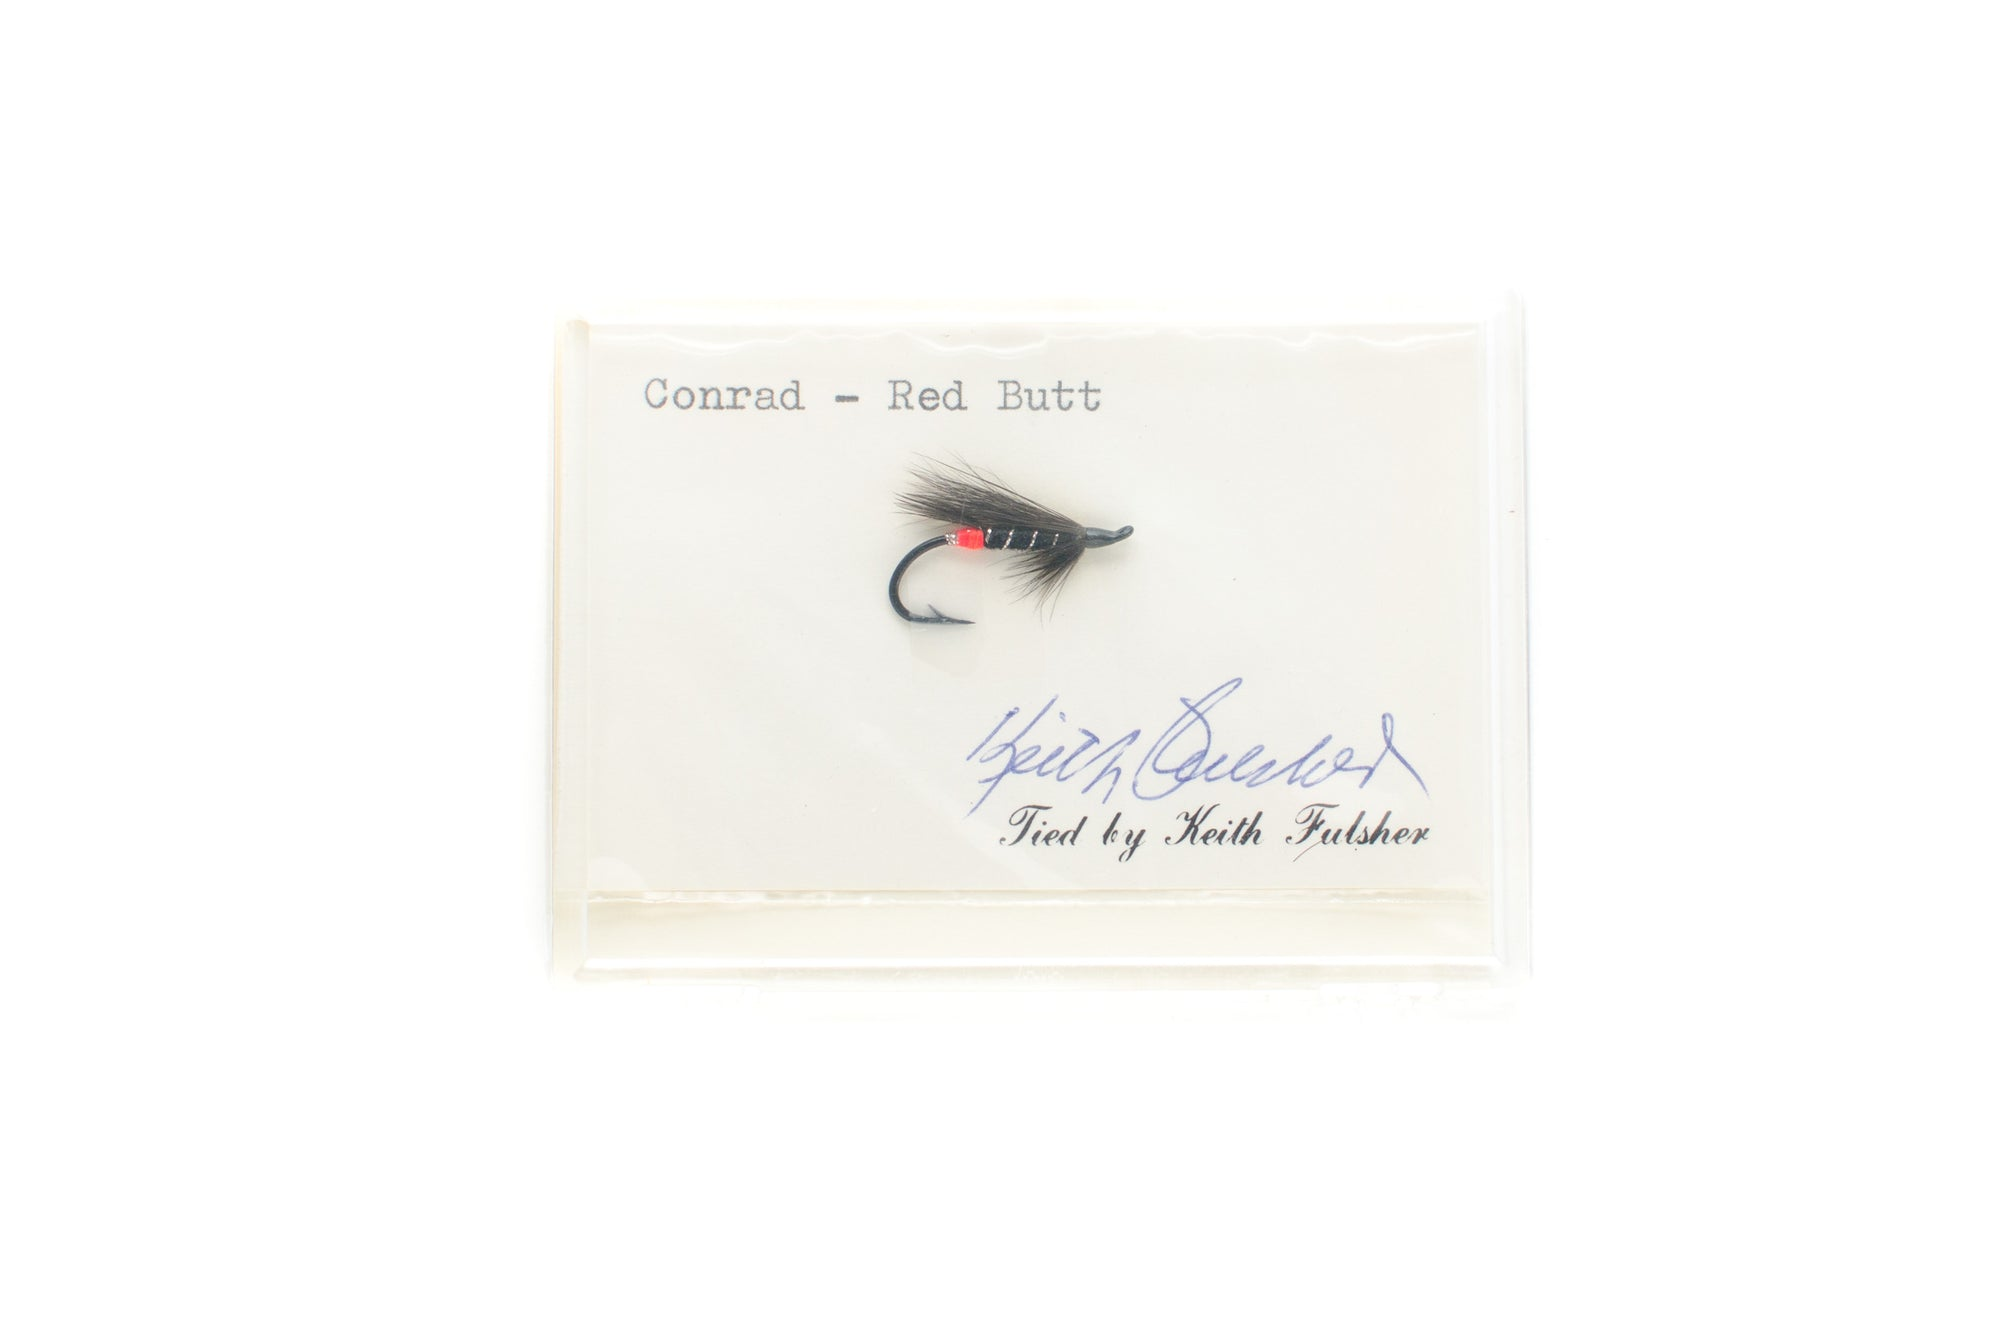 Conrad Red Butt Salmon Fly by Keith Fulsher